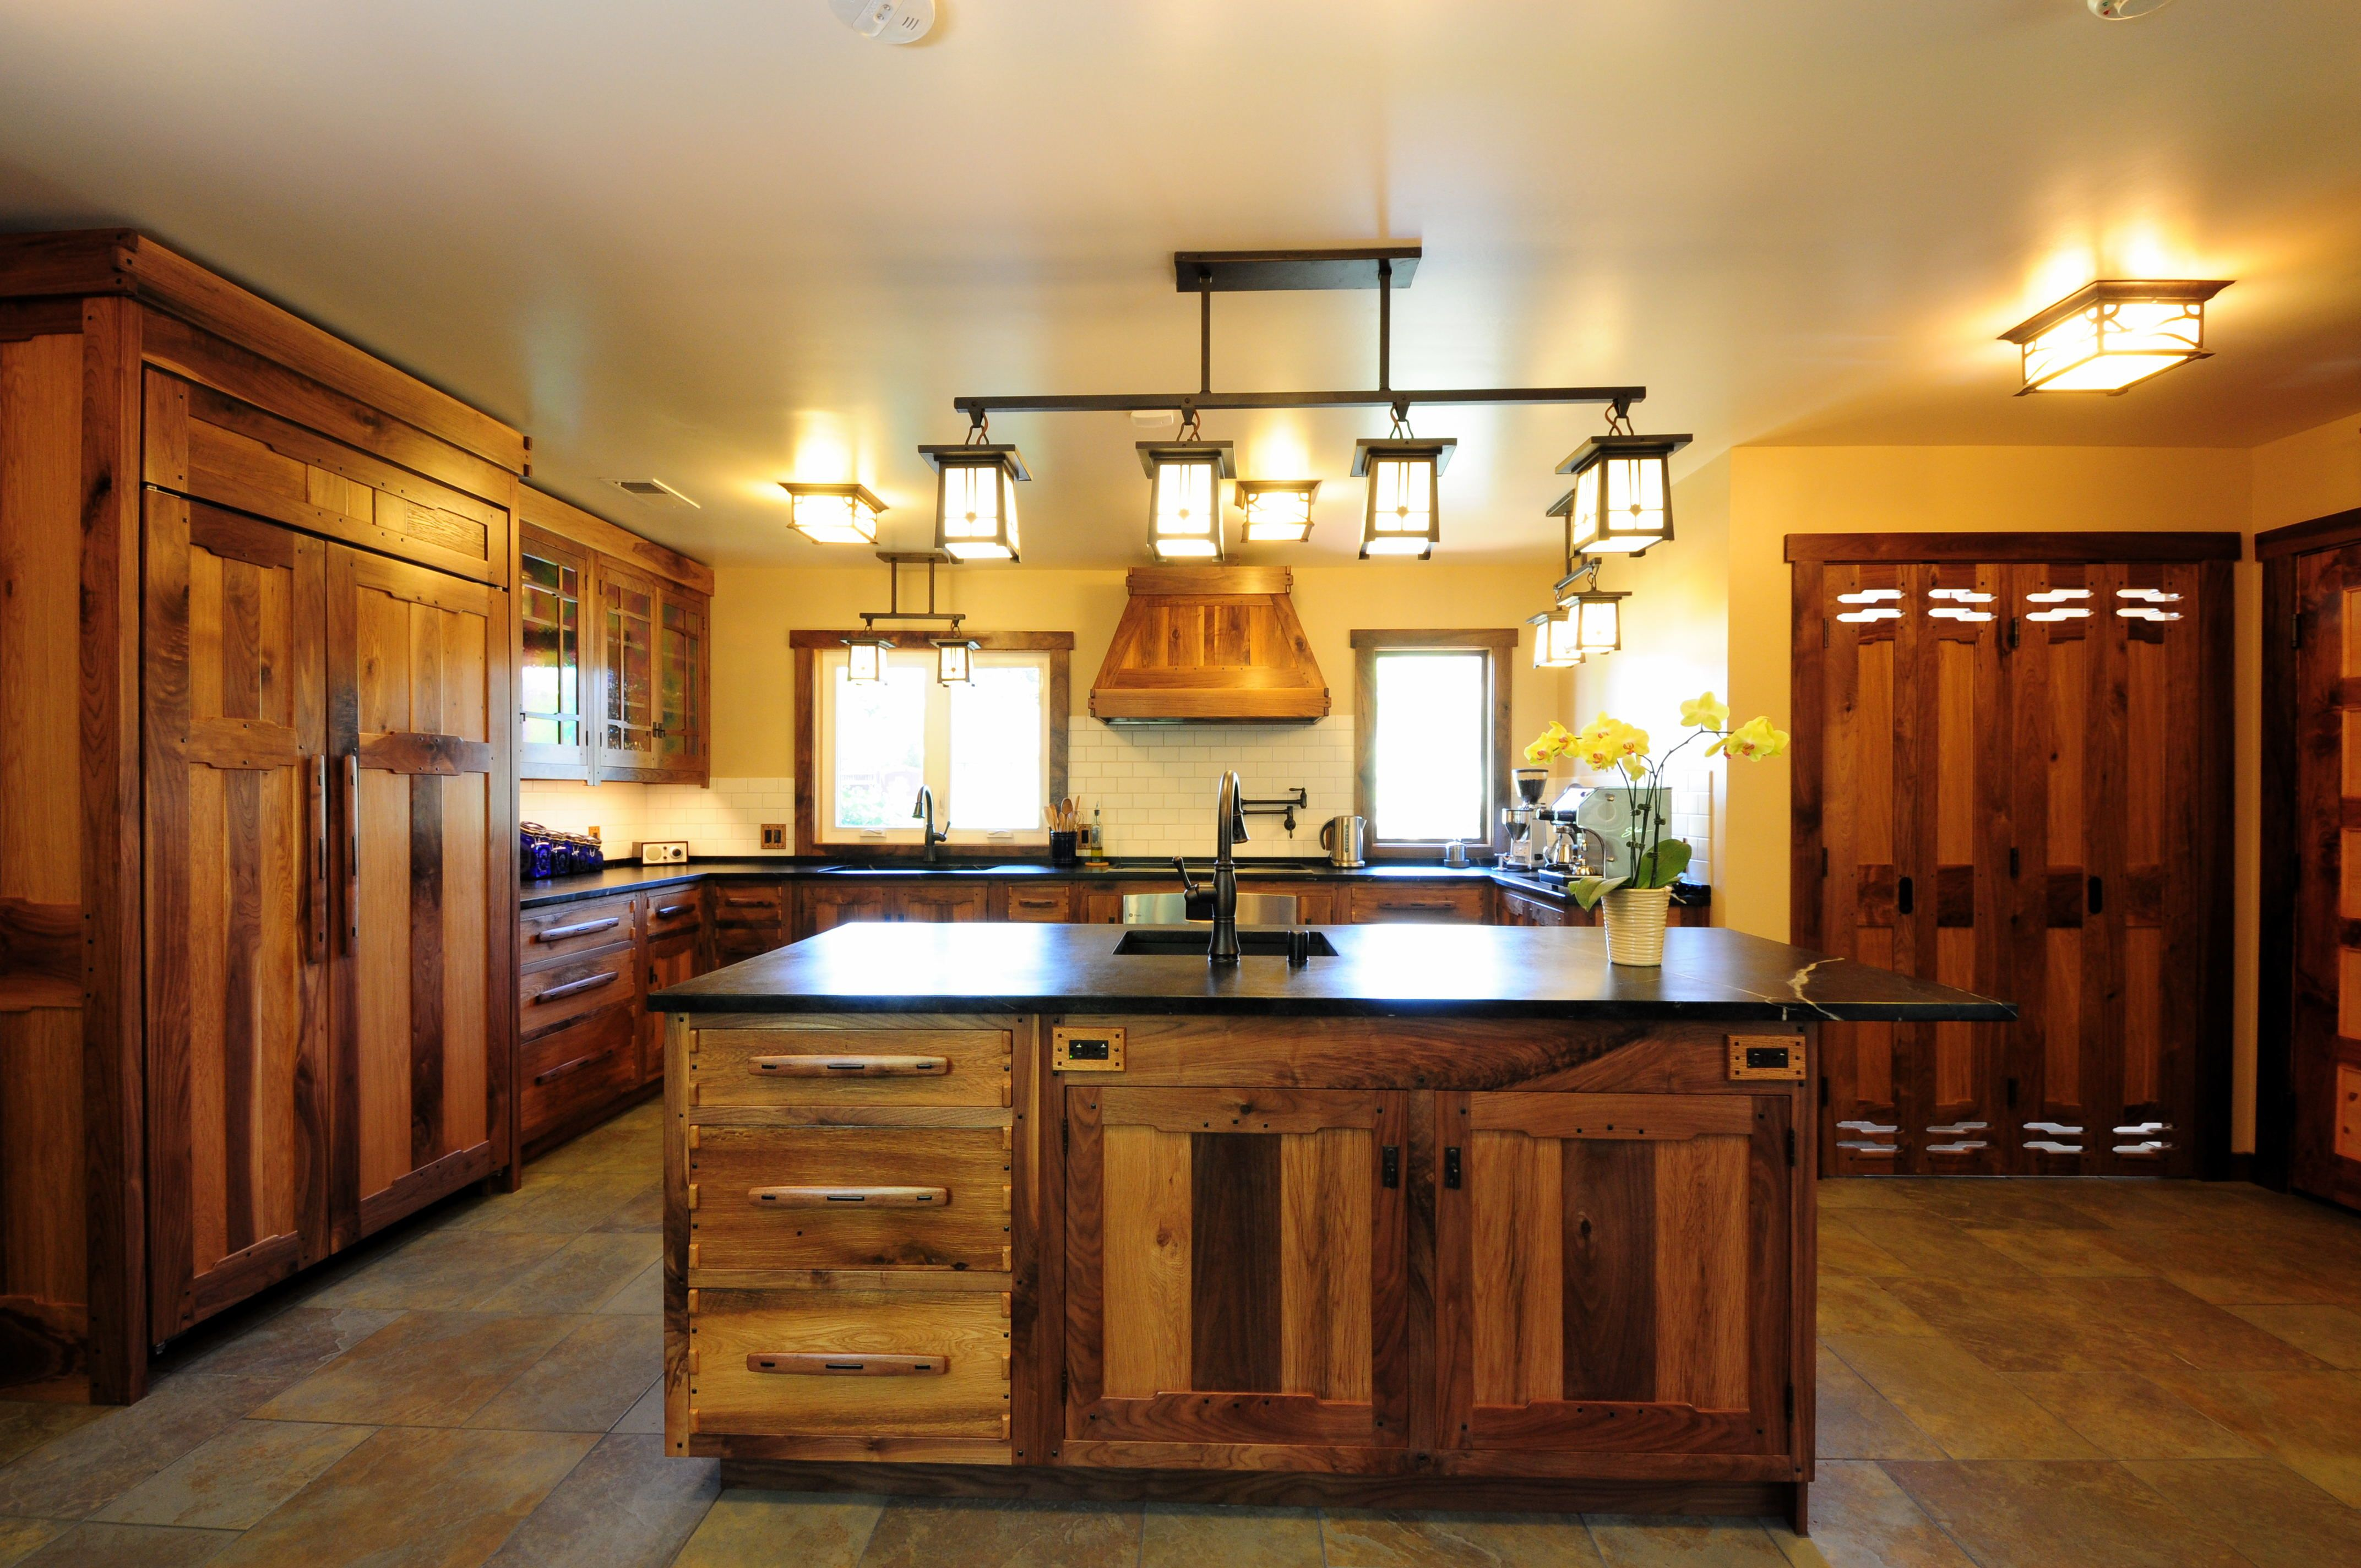 Rustic Kitchen Cabinets Rustic Kitchen Cabinets South Homemade Rustic Kitchen Cabinets